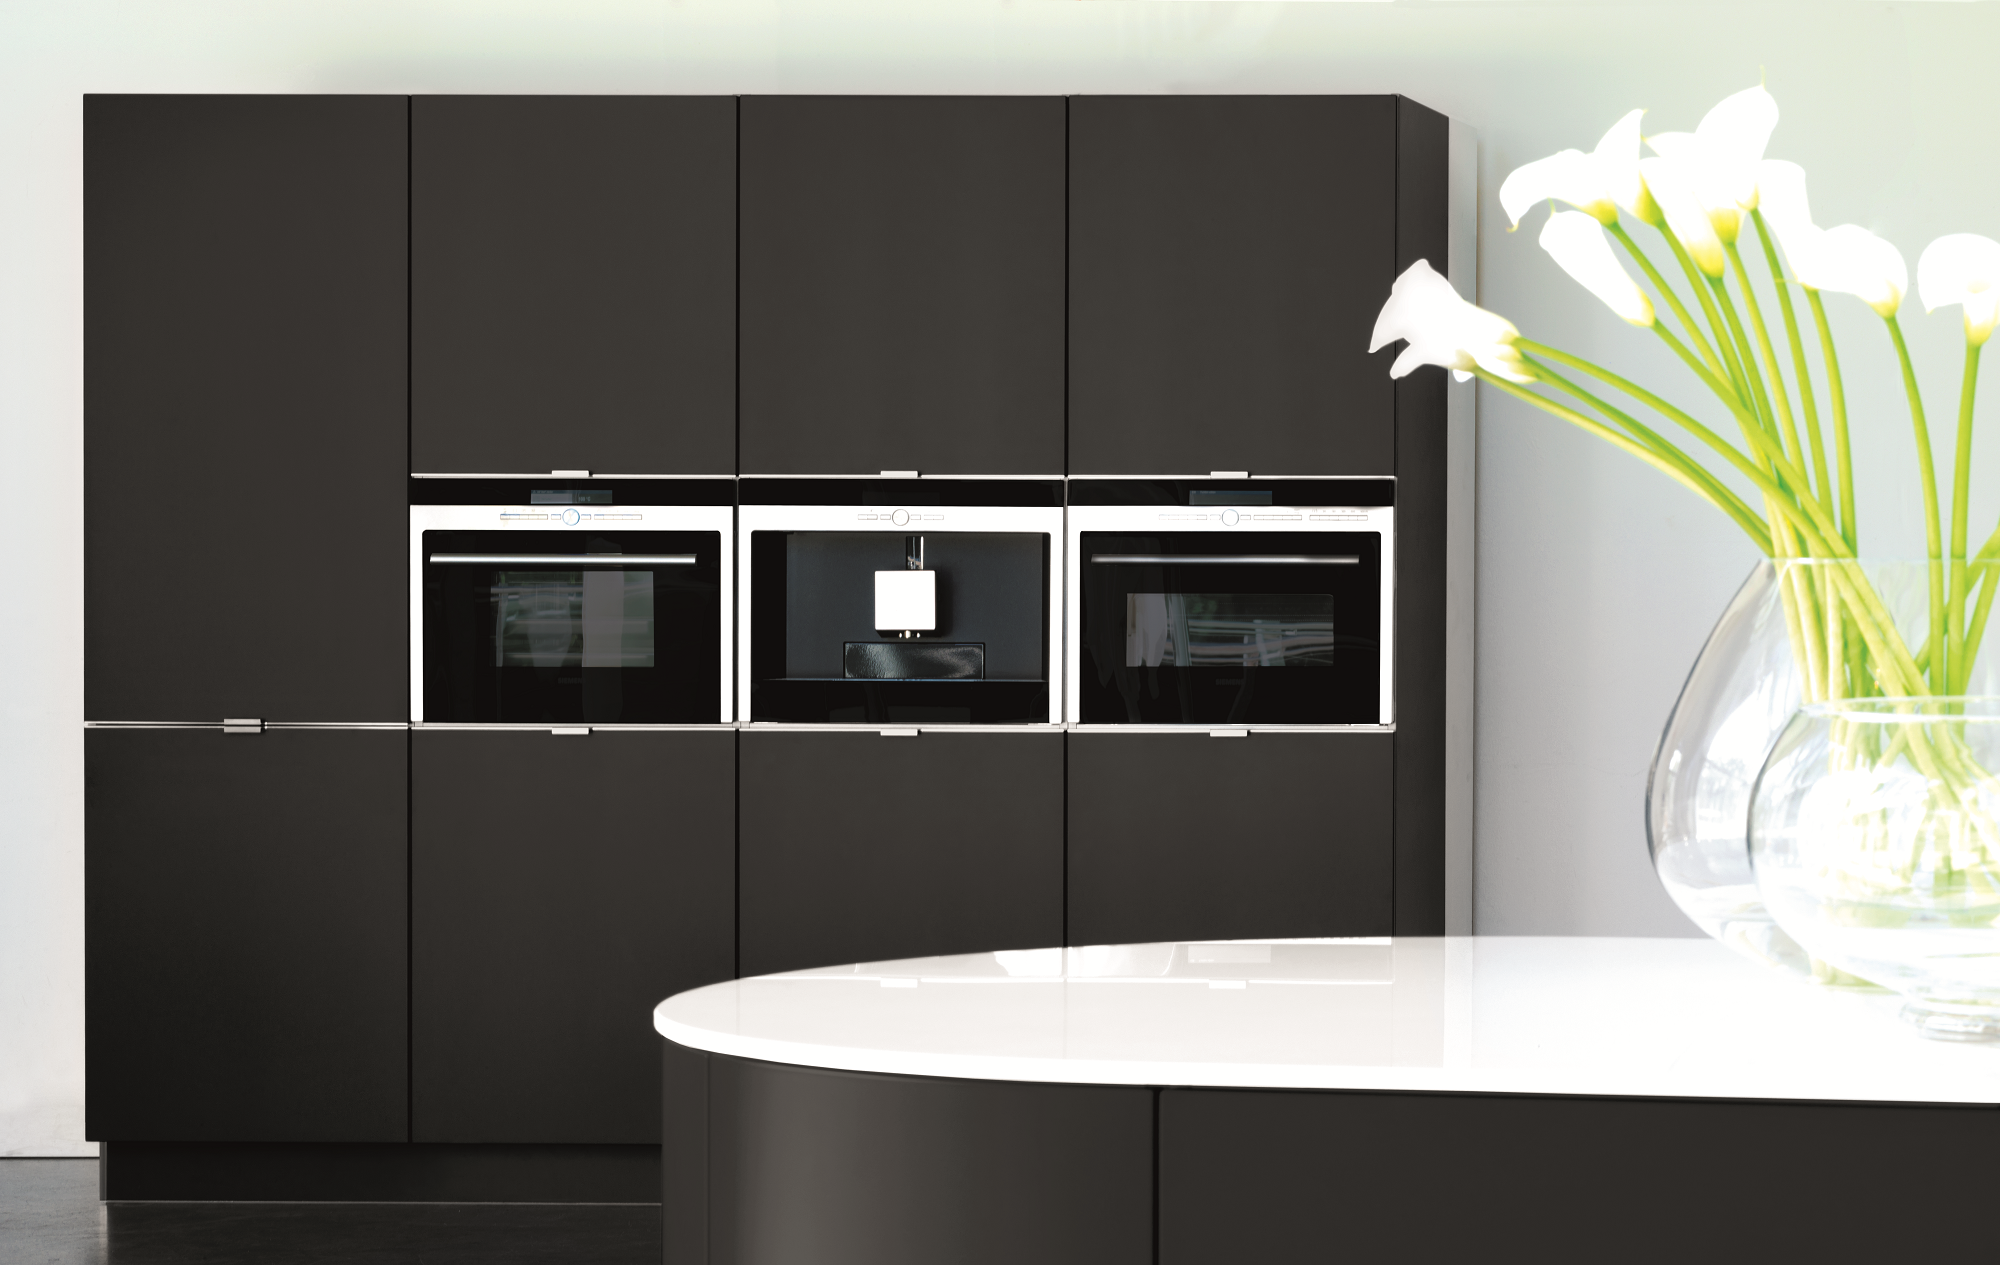 Kitchens In Ireland, Kitchen Design   Surreal Designs Galway Ireland,  Wohnzimmer Dekoo